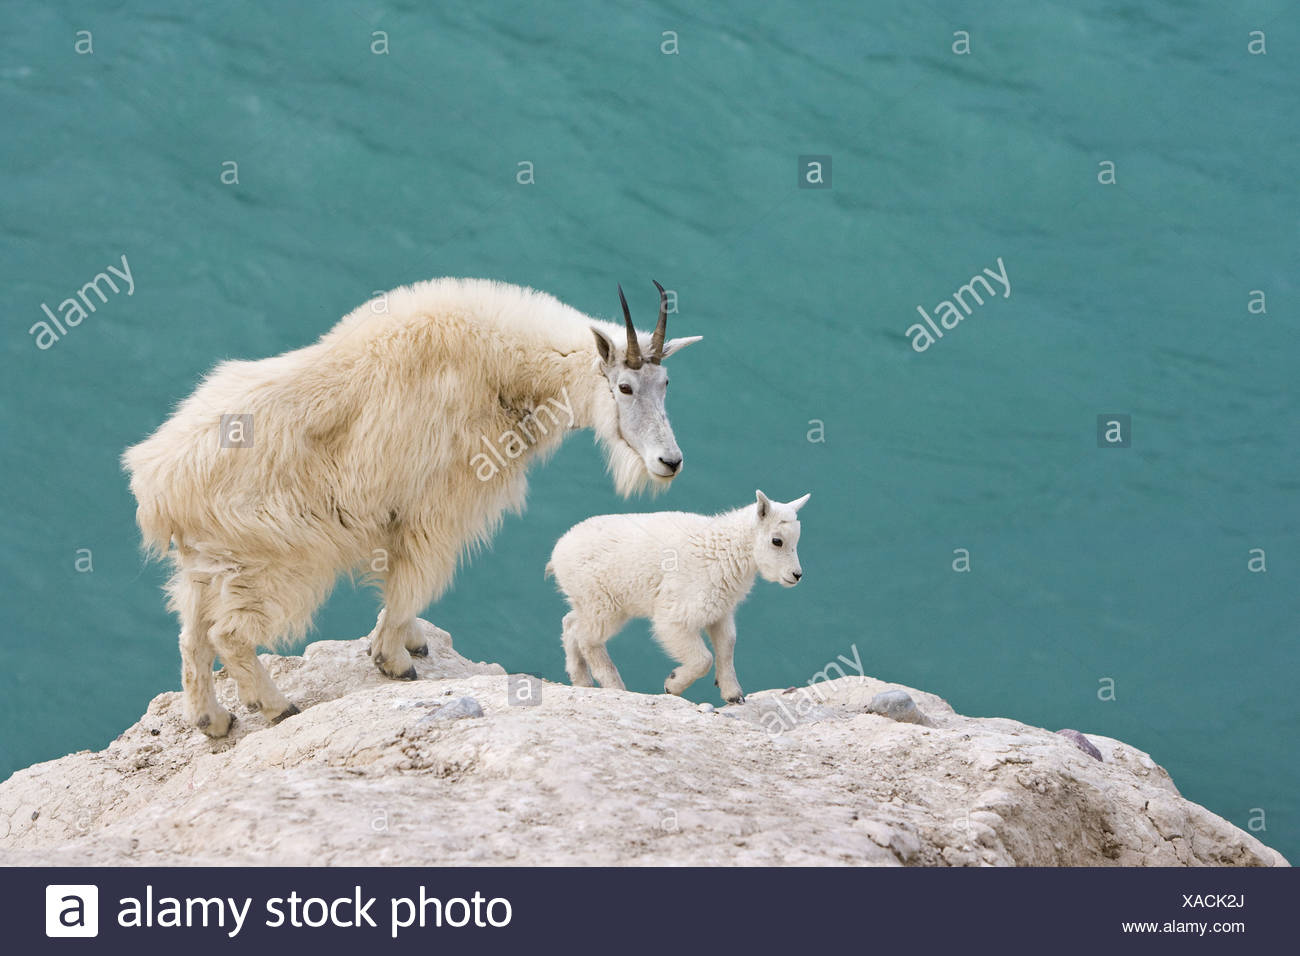 Mountain goat (Oreamnos americanus), nanny and kid, overlooking the Athabasca River, Jasper National Park, Alberta, Canada. - Stock Image